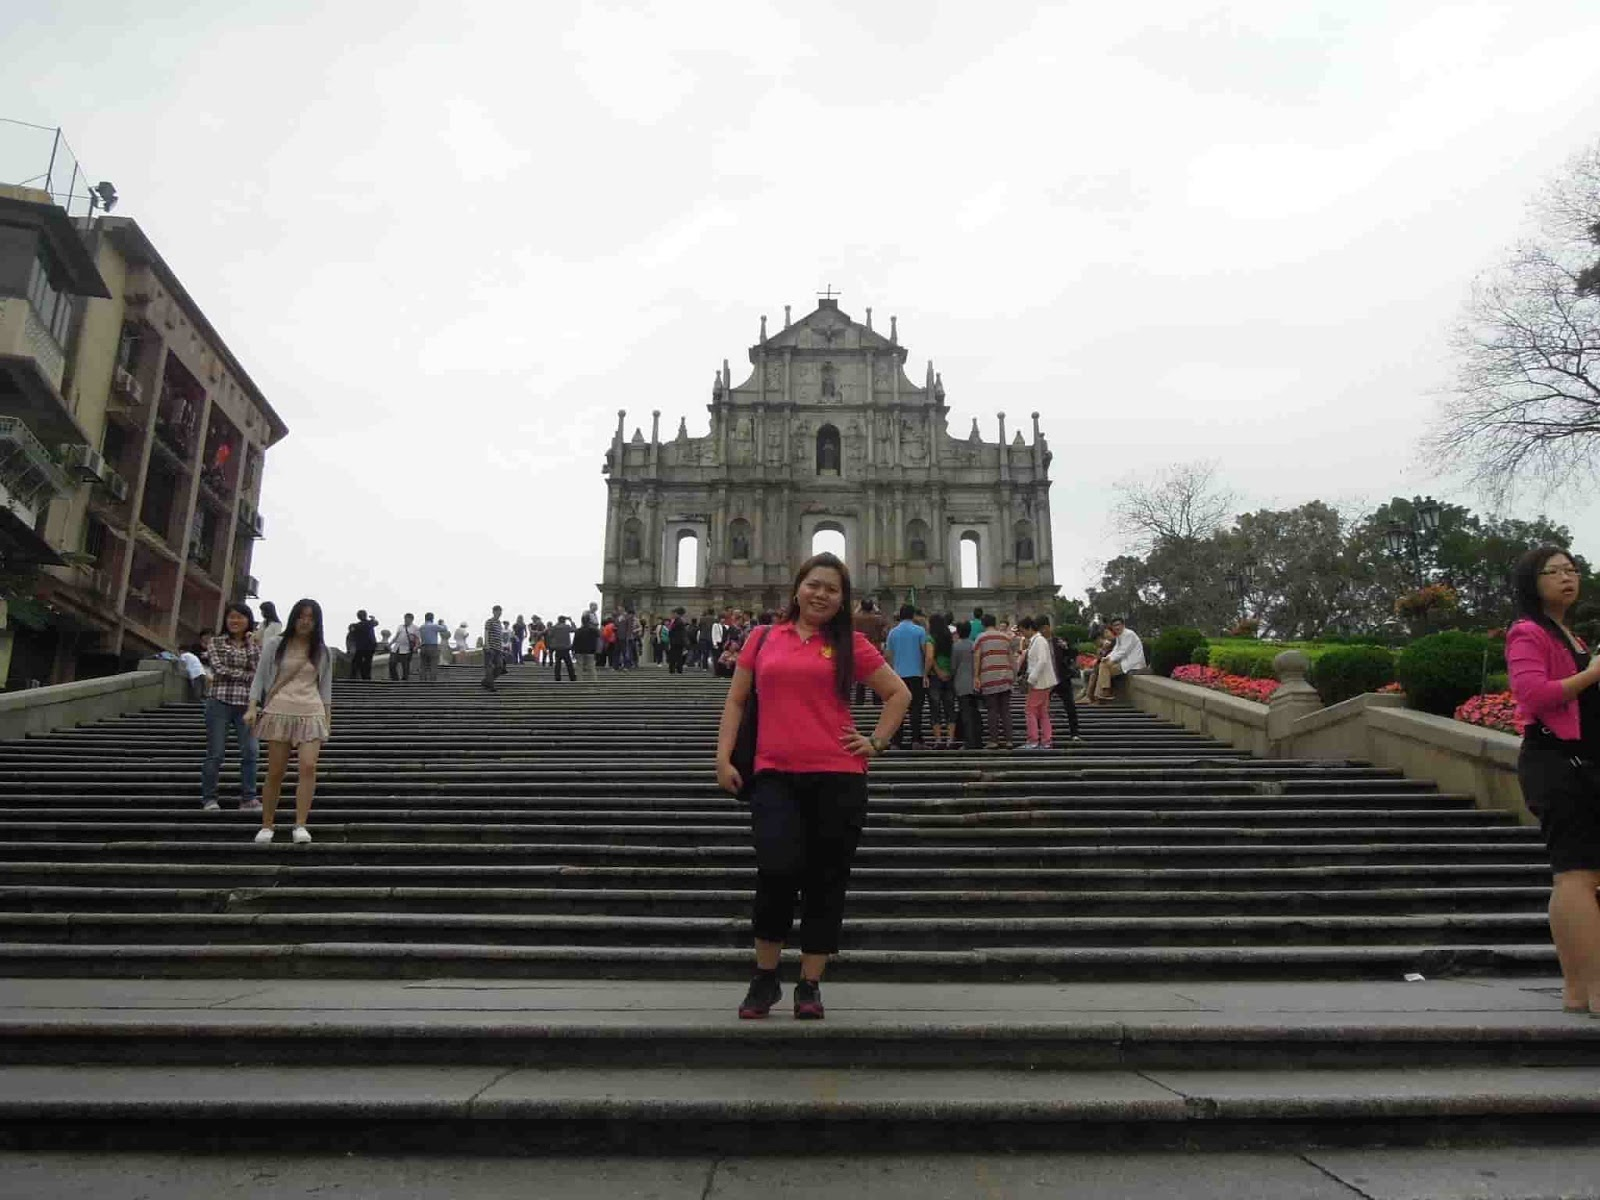 A photo at the stairs with the Ruins of St. Paul's in the background in Macau